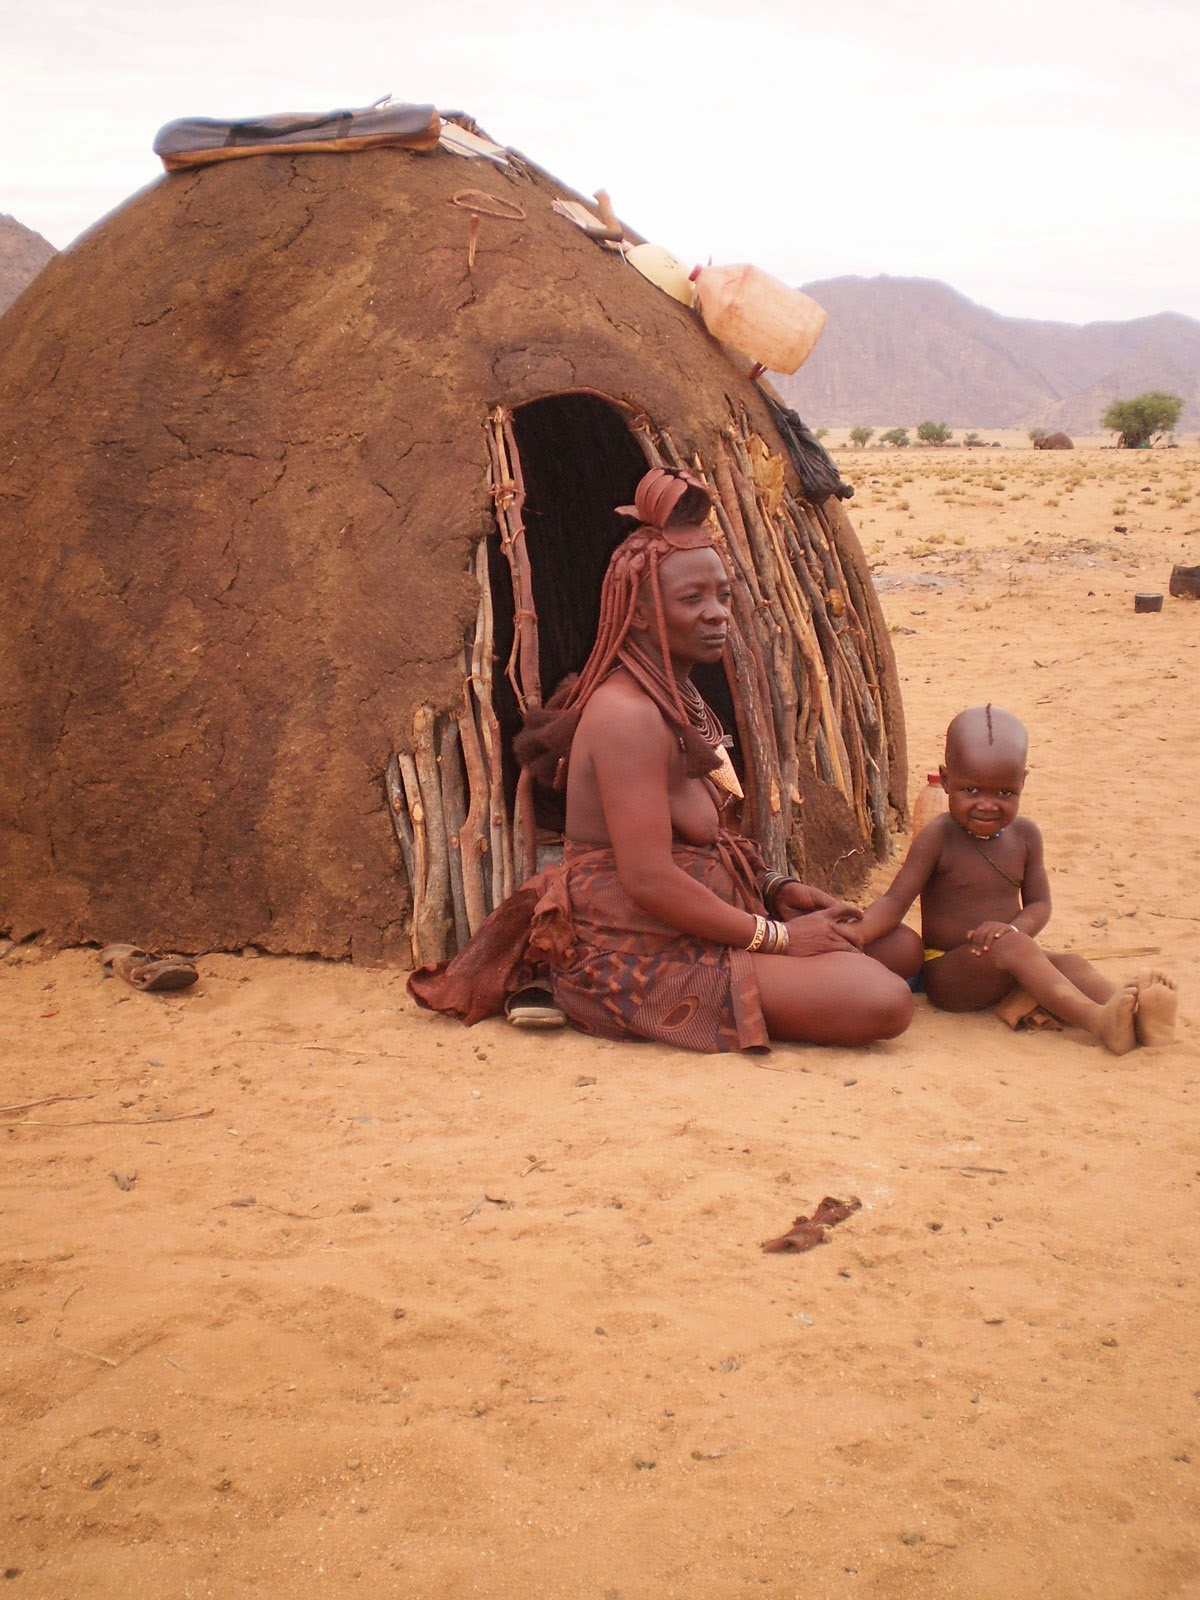 Himba at Okahirongo, Namibia